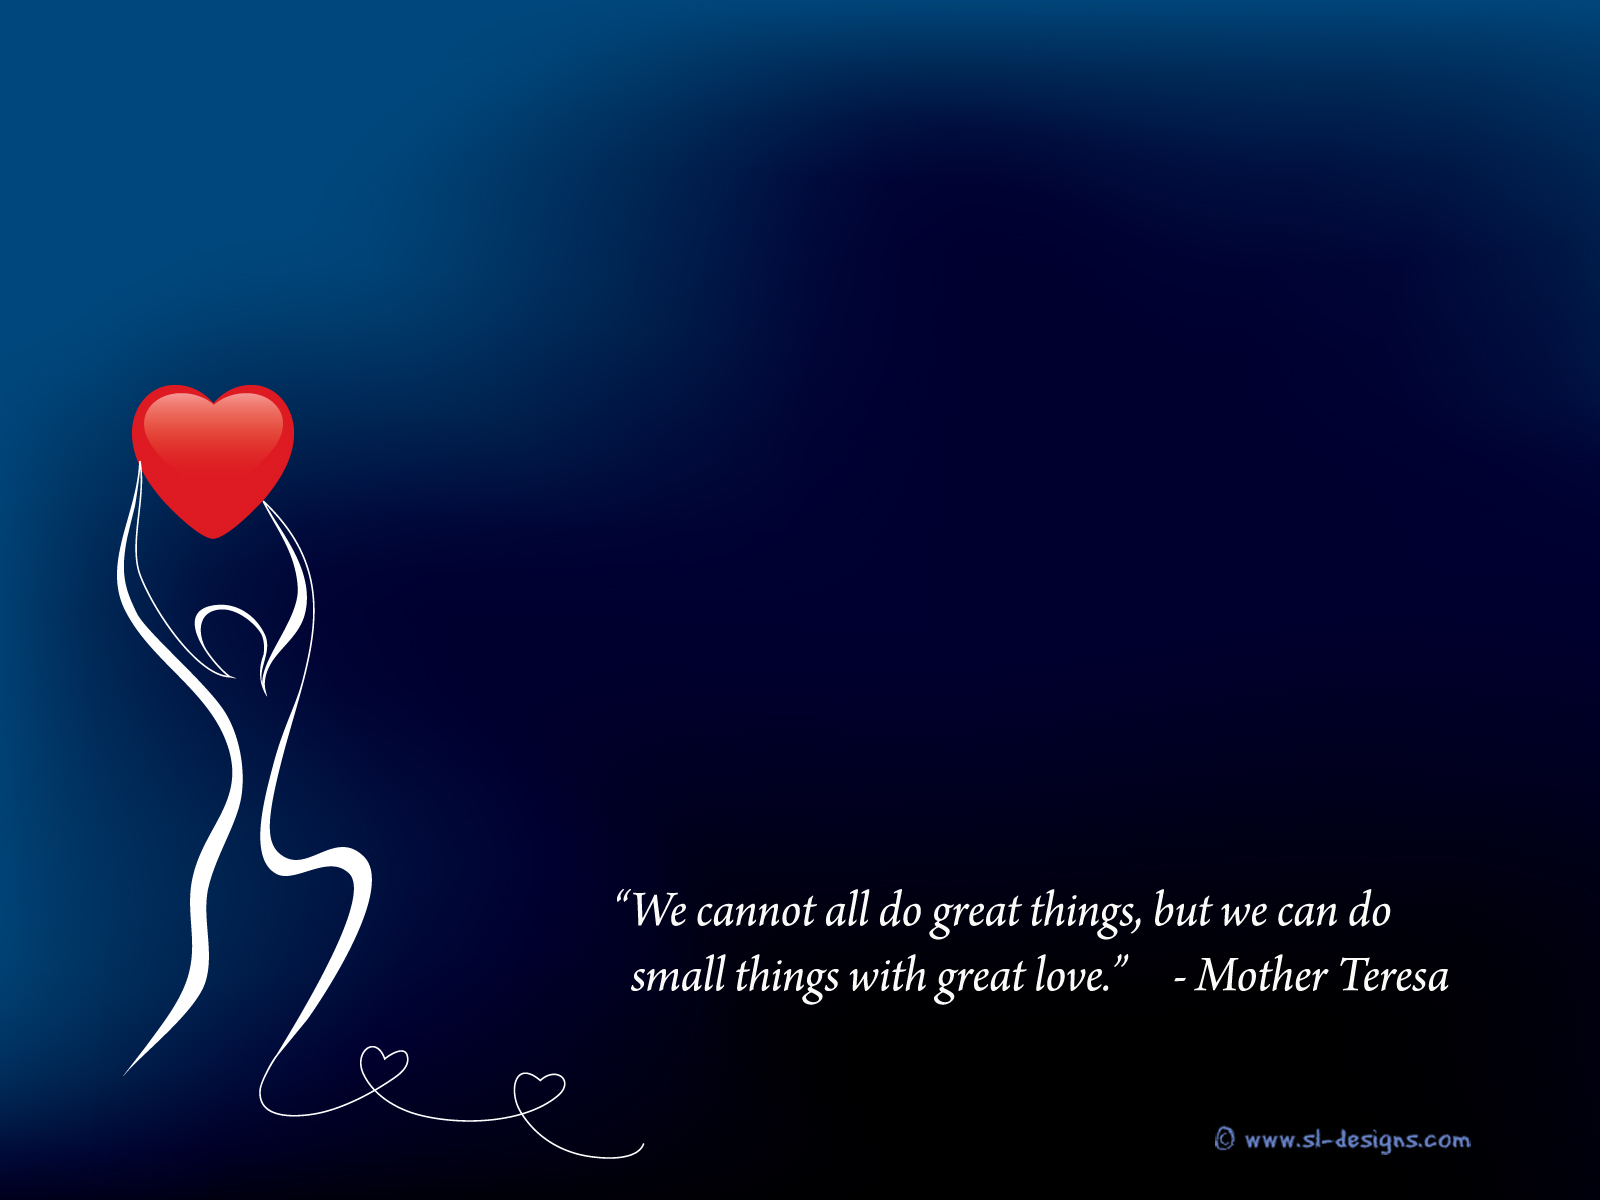 ... cannot all do great things but we can do small things with great love